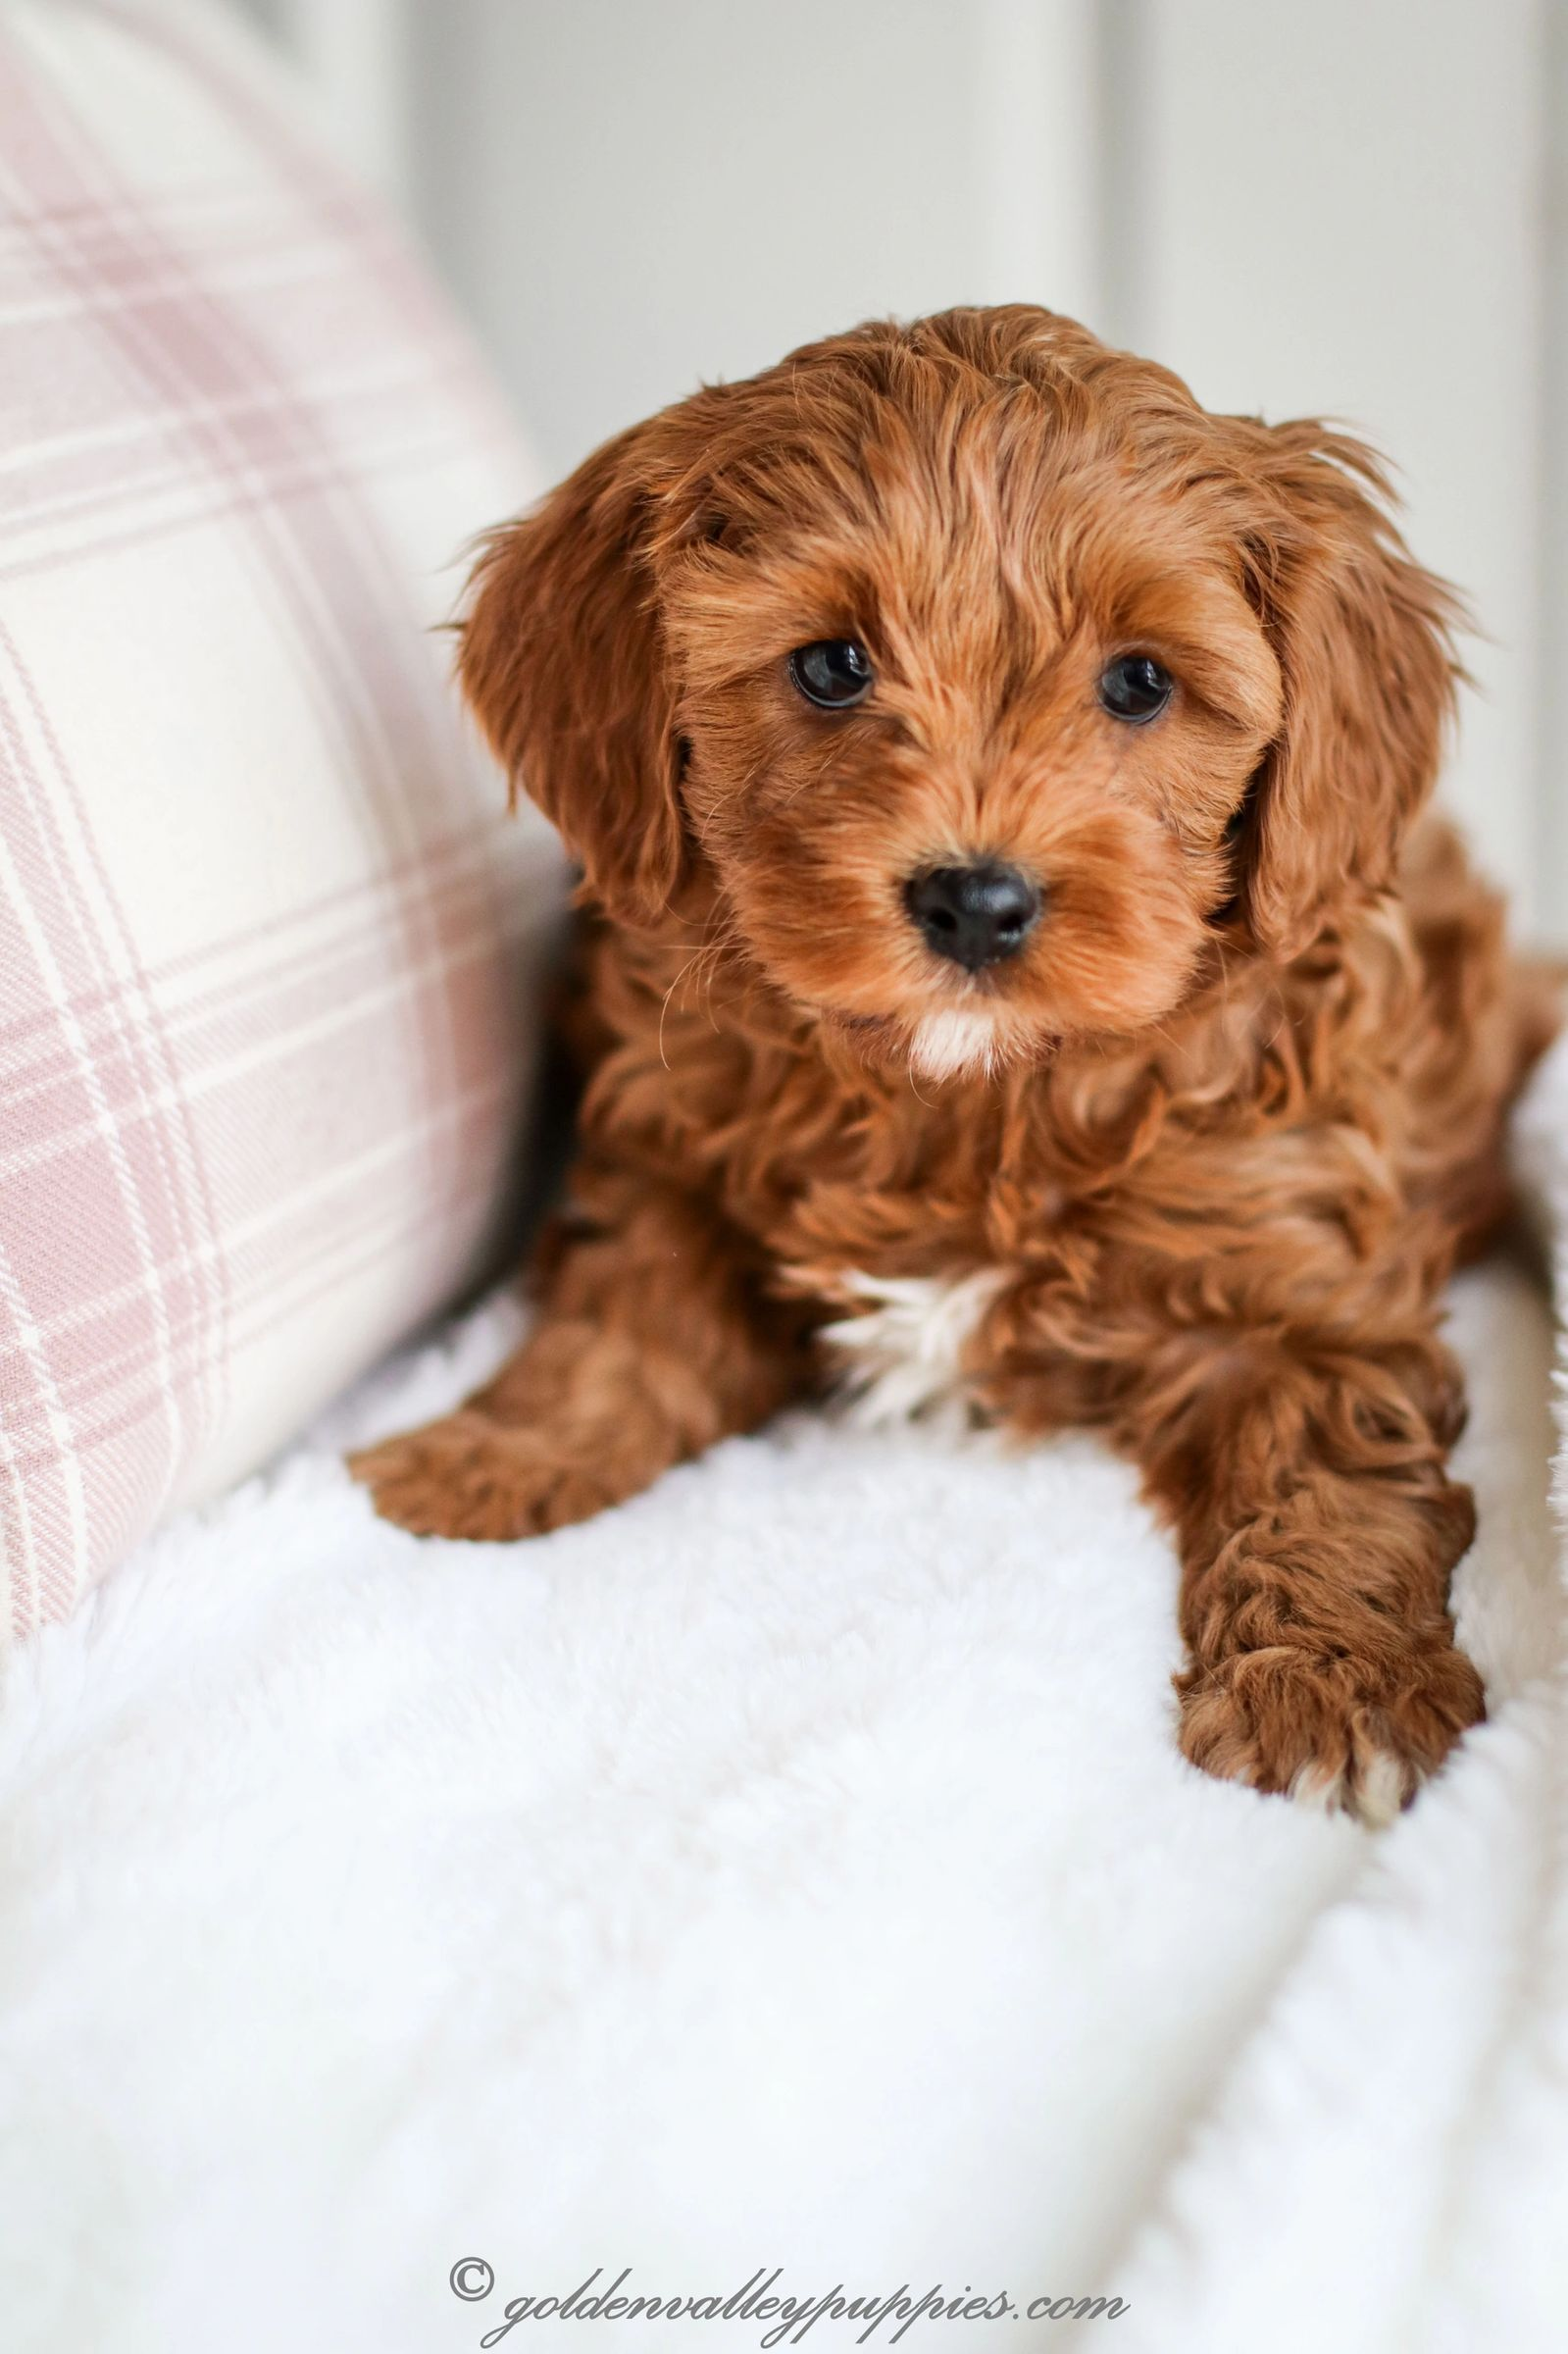 Our Puppy Album Cavapoo Puppies For Sale Golden Valley Puppies